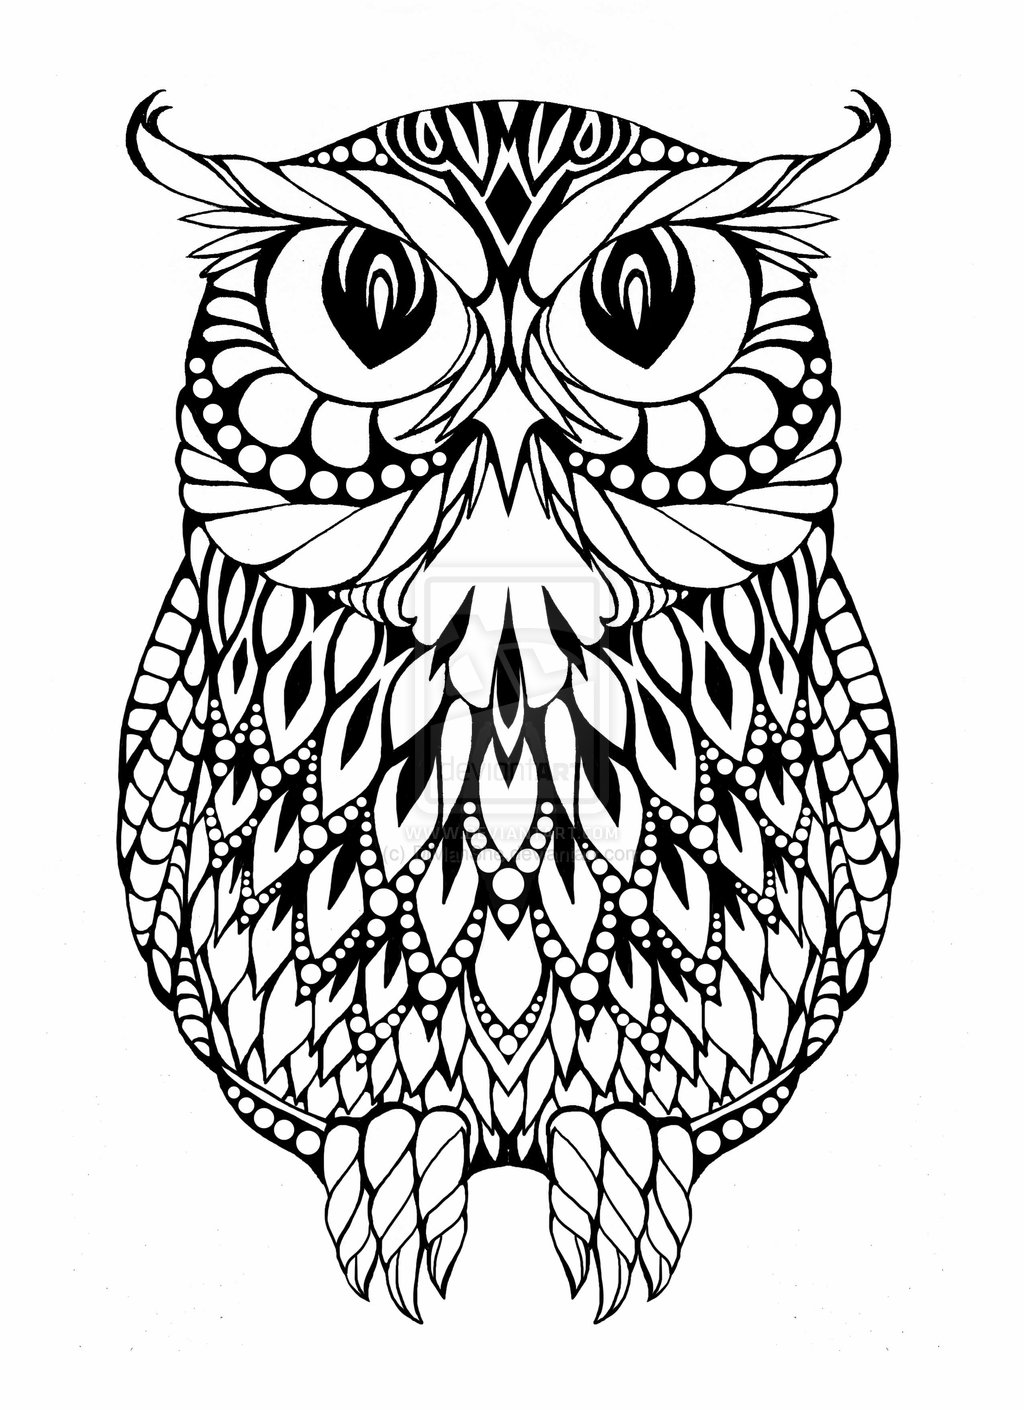 Owl Line Drawing at GetDrawings.com | Free for personal use Owl Line ...